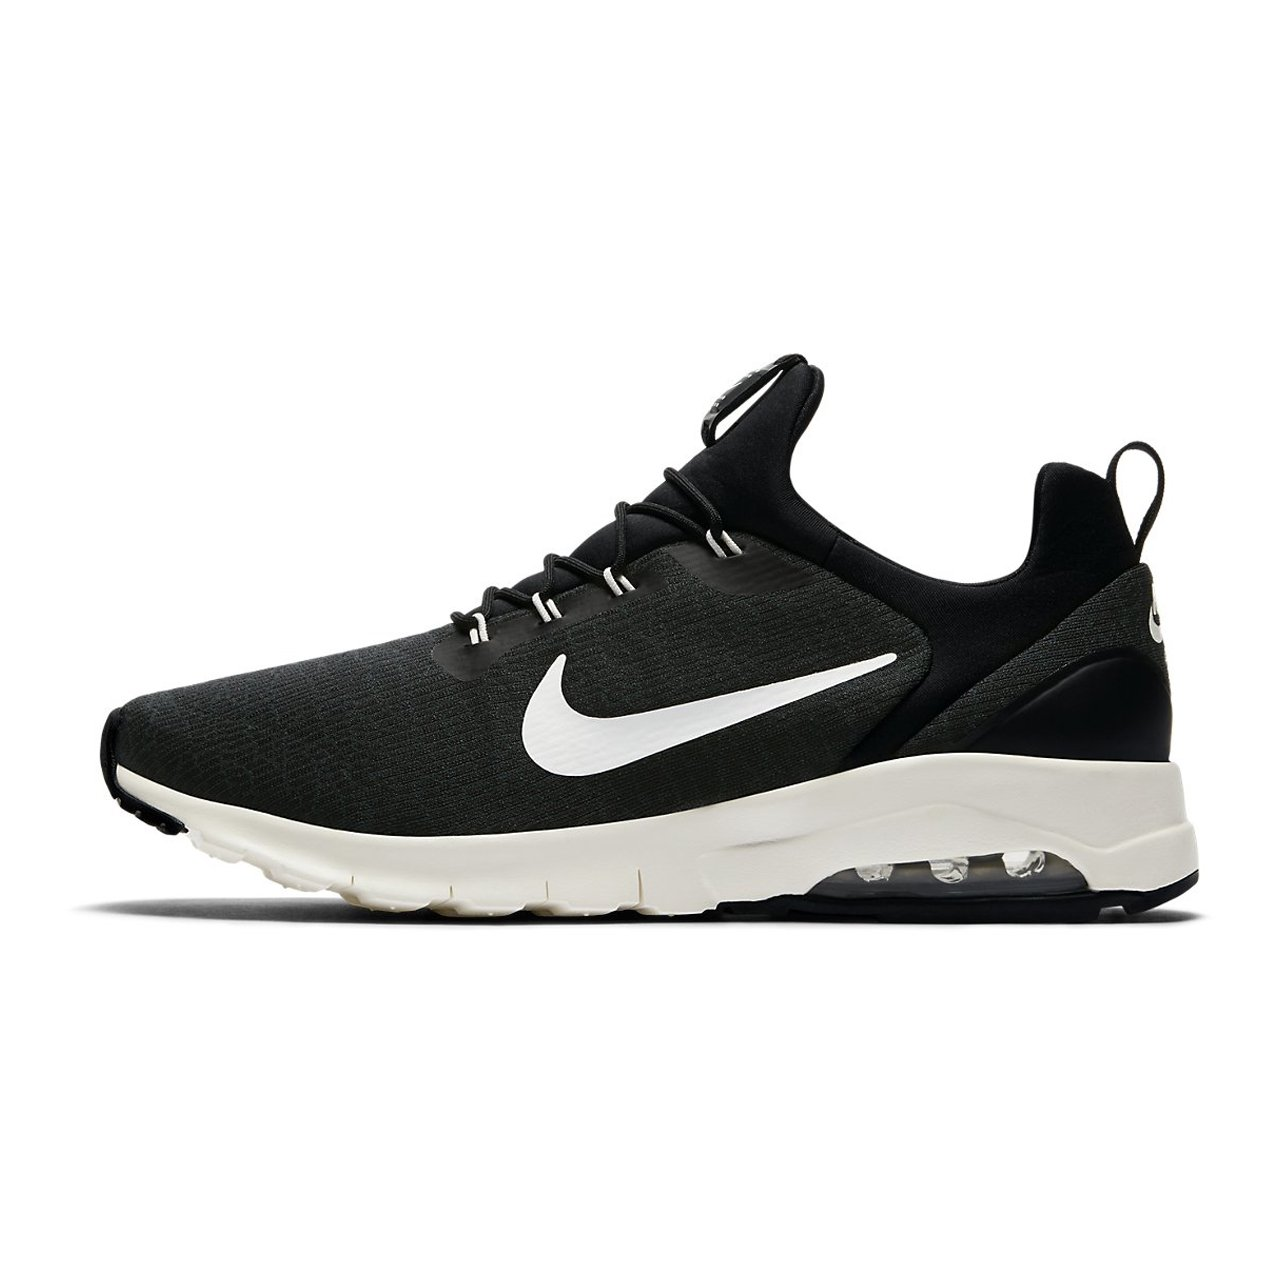 Nike Air Max Motion Racer 916771001 Color: Black